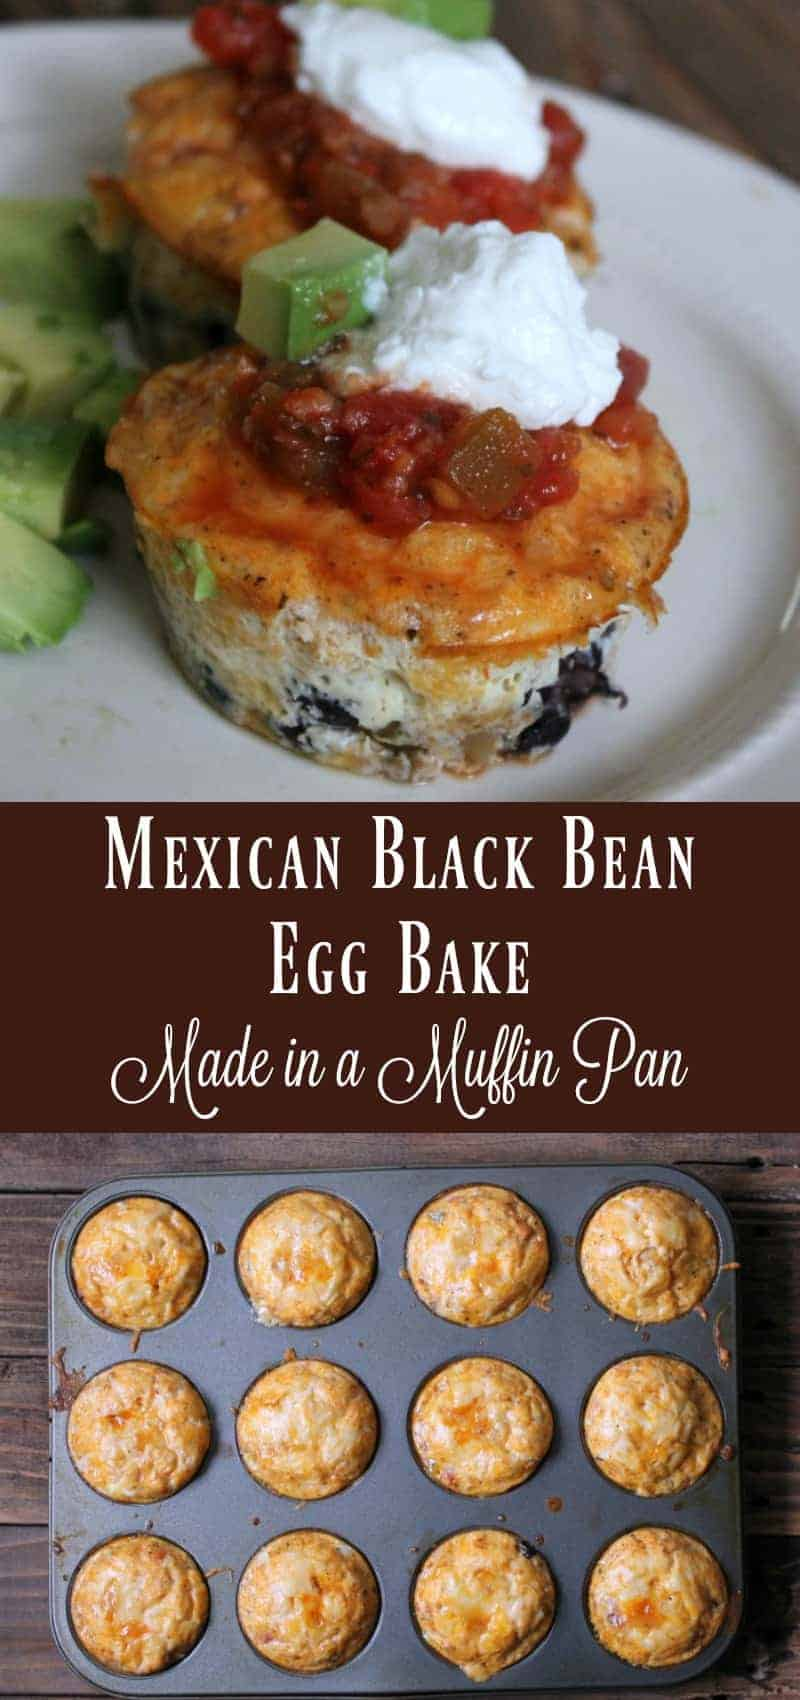 Mexican Black Bean Egg Bake make in a muffin tin. Healthy breakfast recipe